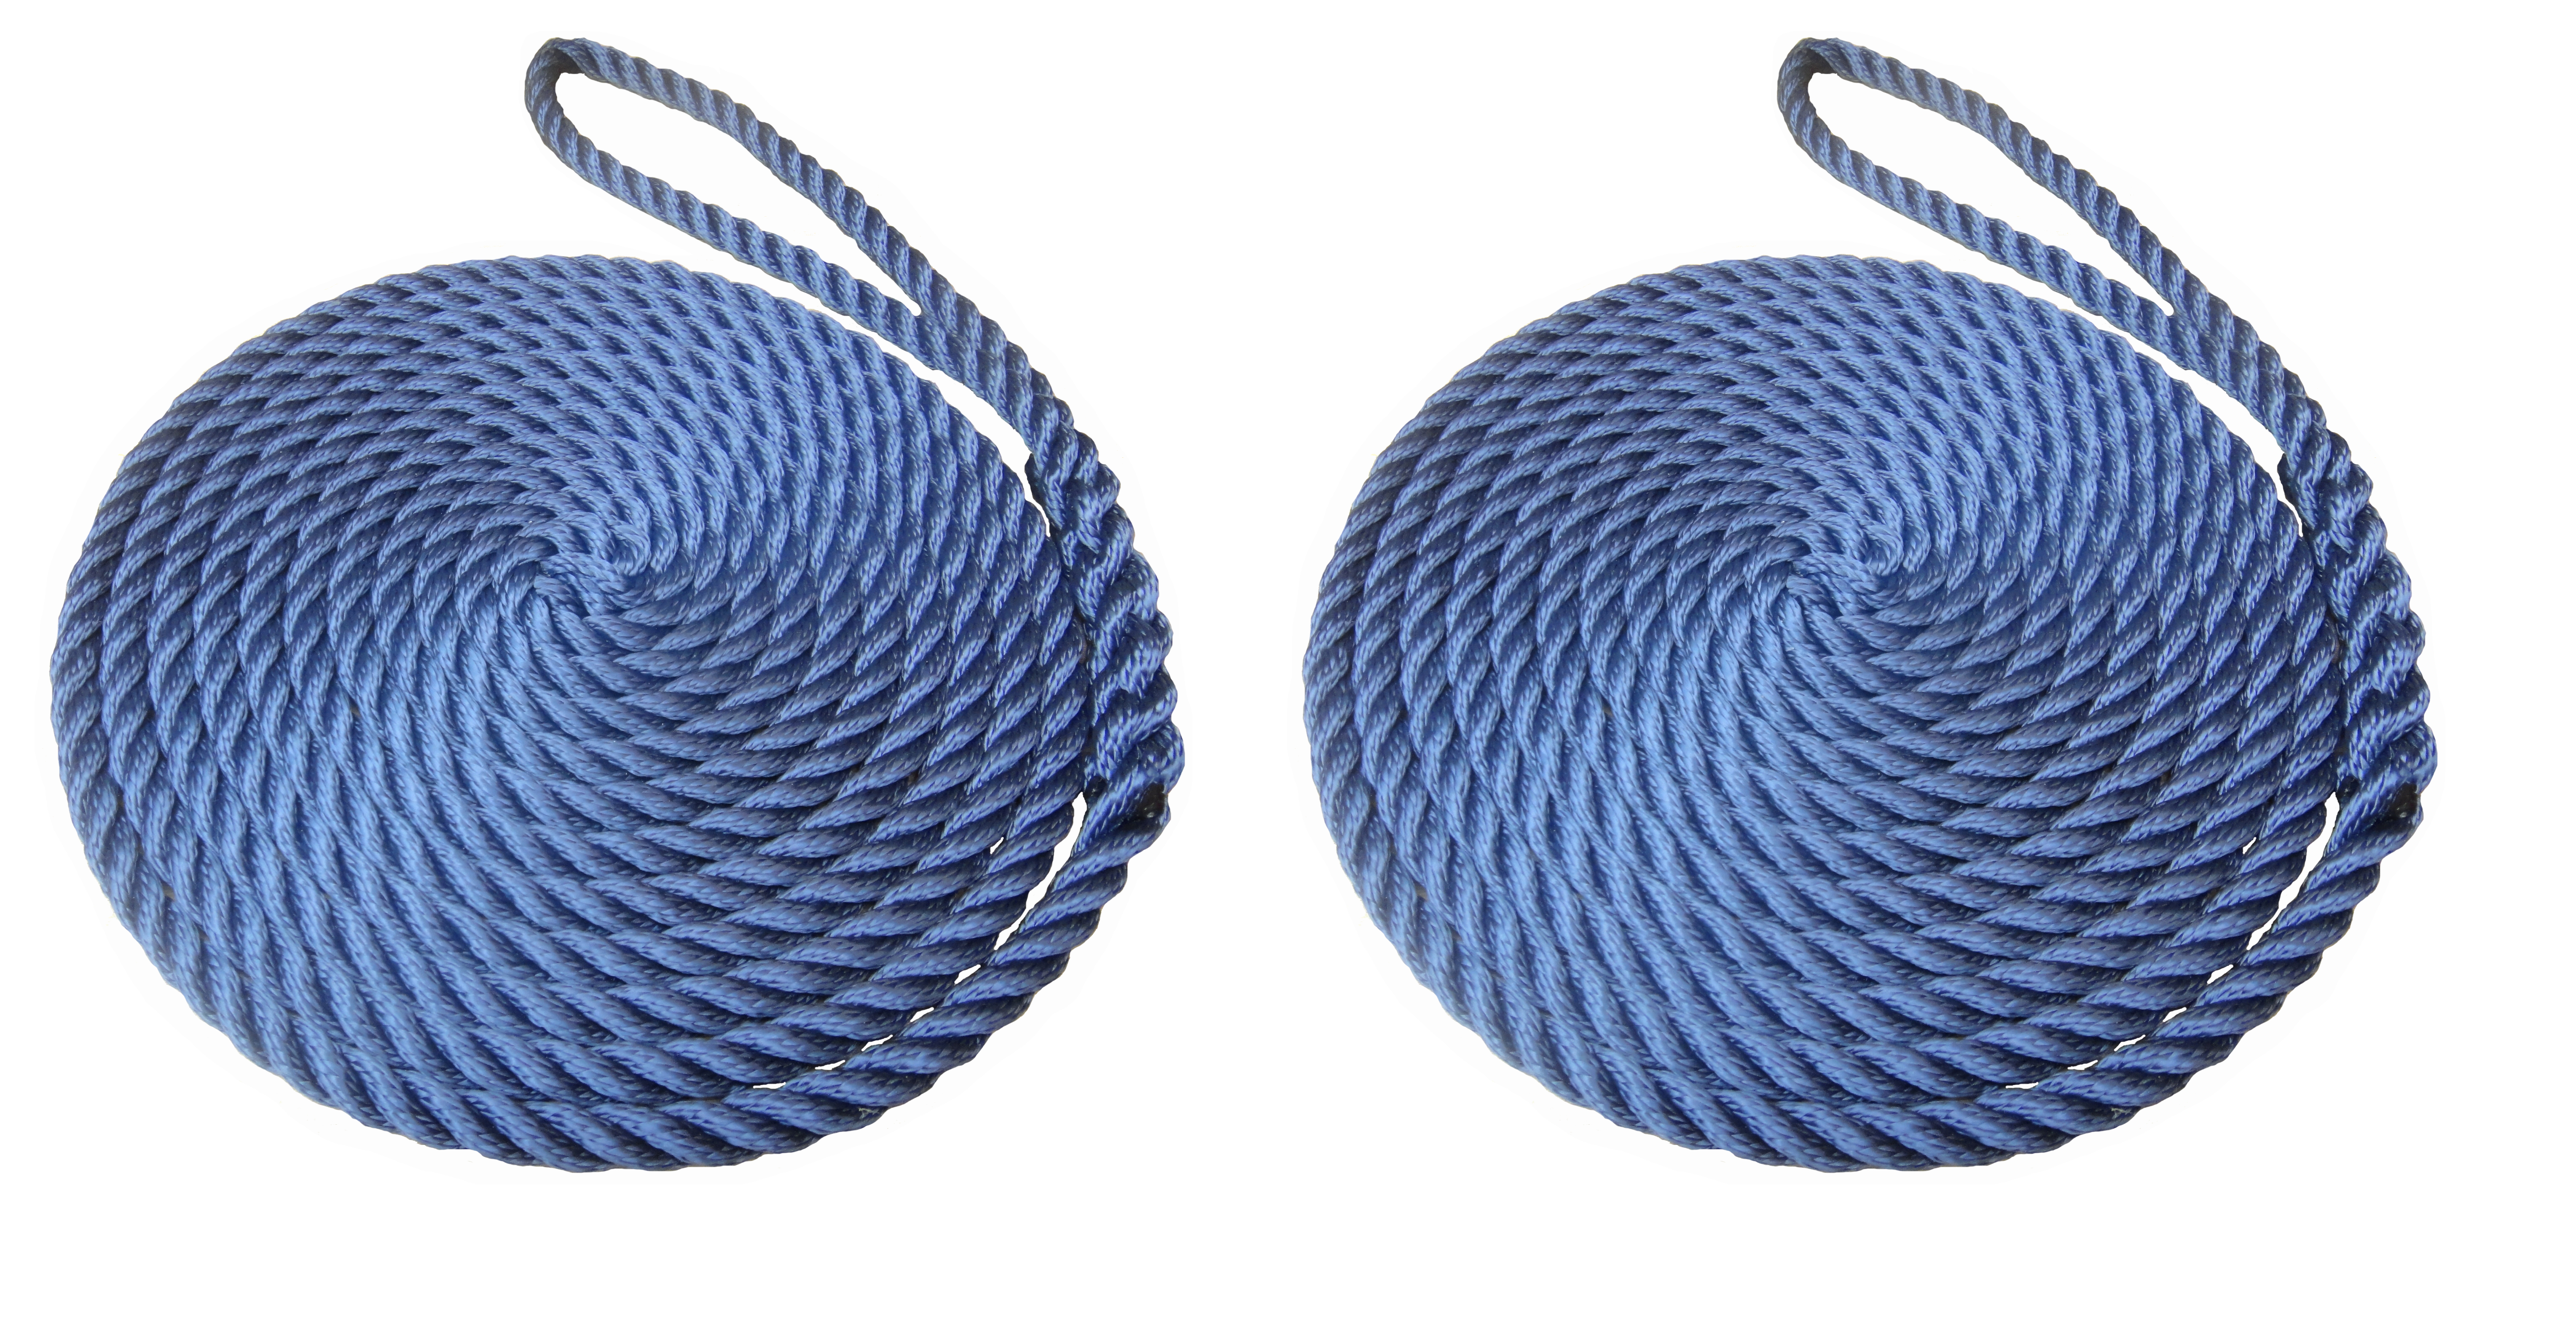 2 x 16mm Navy Blue 3-Strand Boat Mooring Ropes/Warps/Lines Large Soft Eye One End